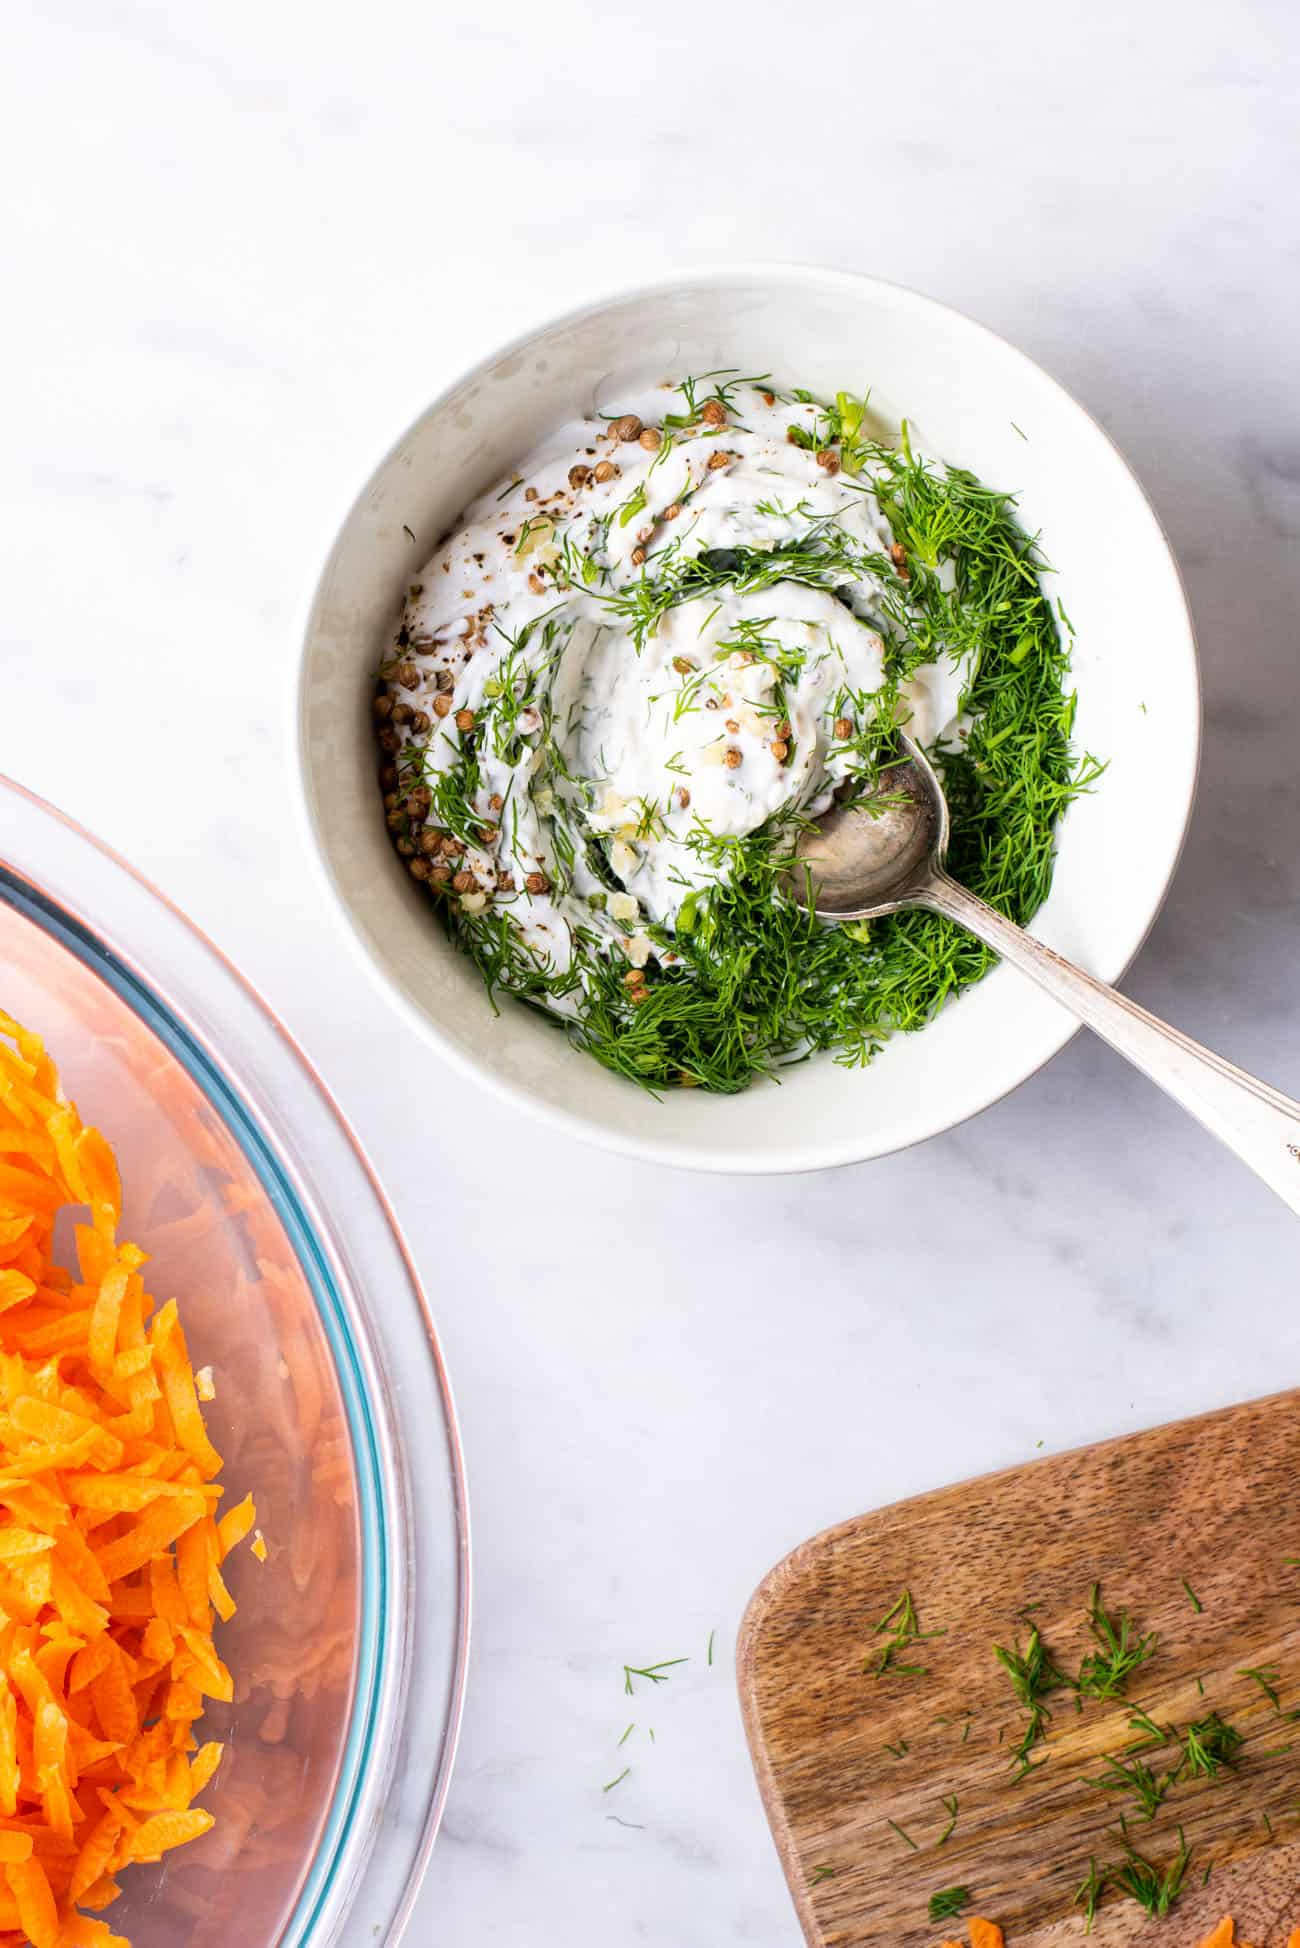 Yogurt dressing with coriander seeds and dill